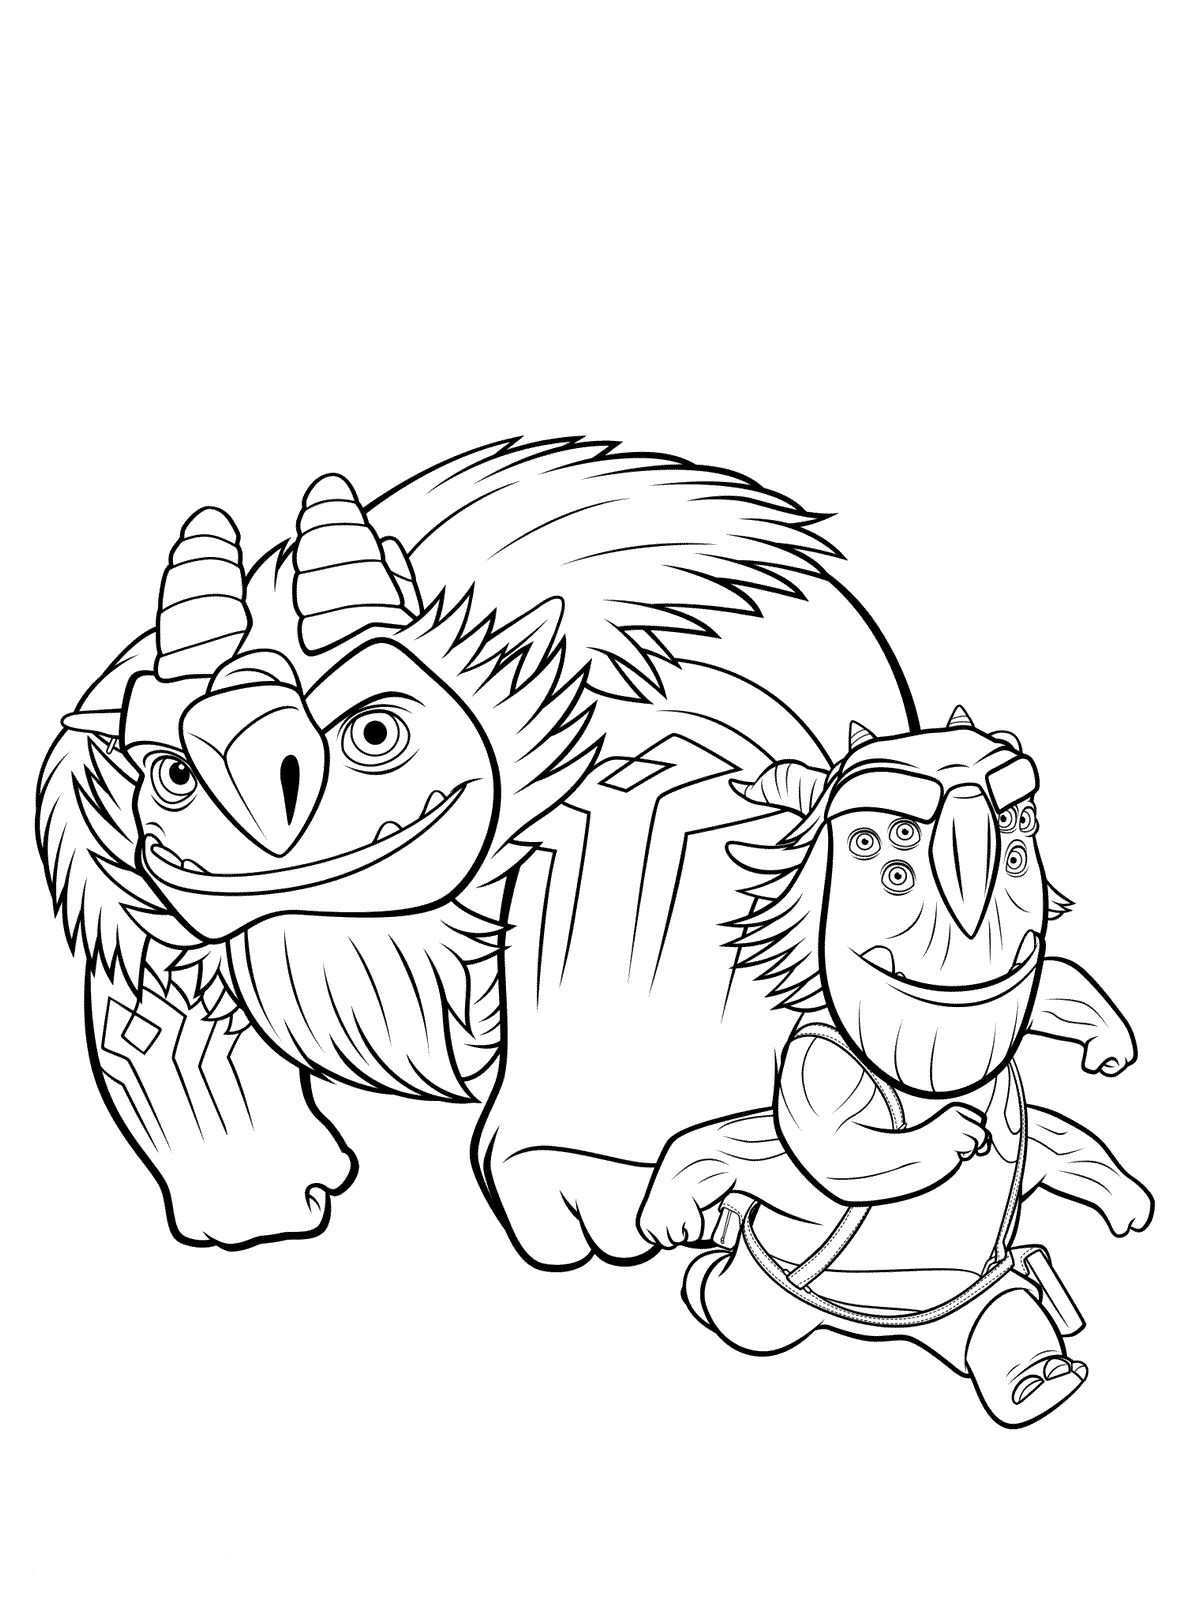 n 10 coloring pages of trollhunters